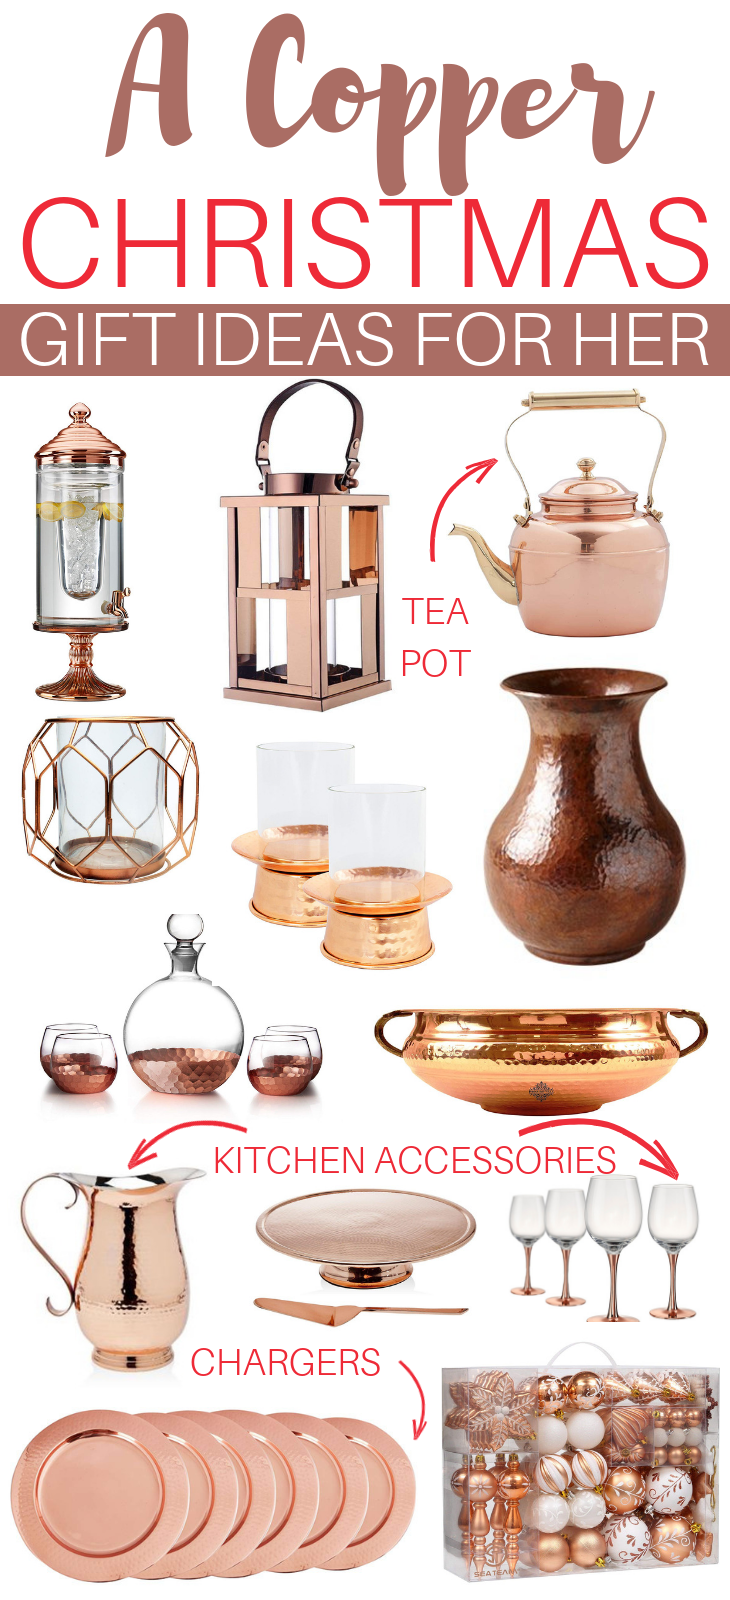 a copper christmas: gift ideas for her | top blogs - pinterest viral